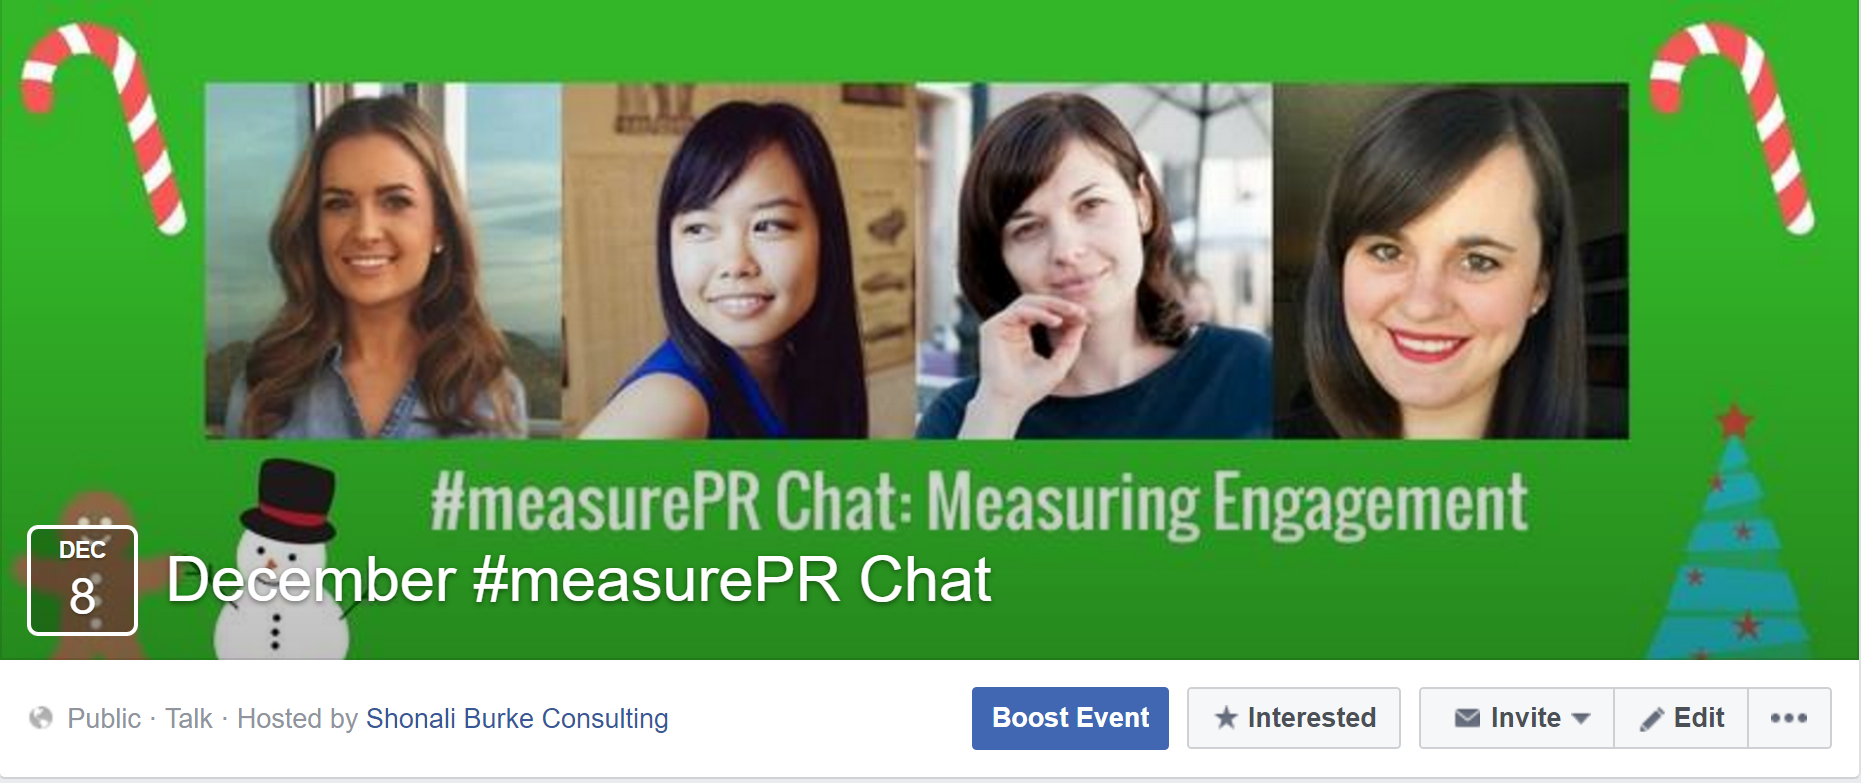 #measurePR December Facebook Event